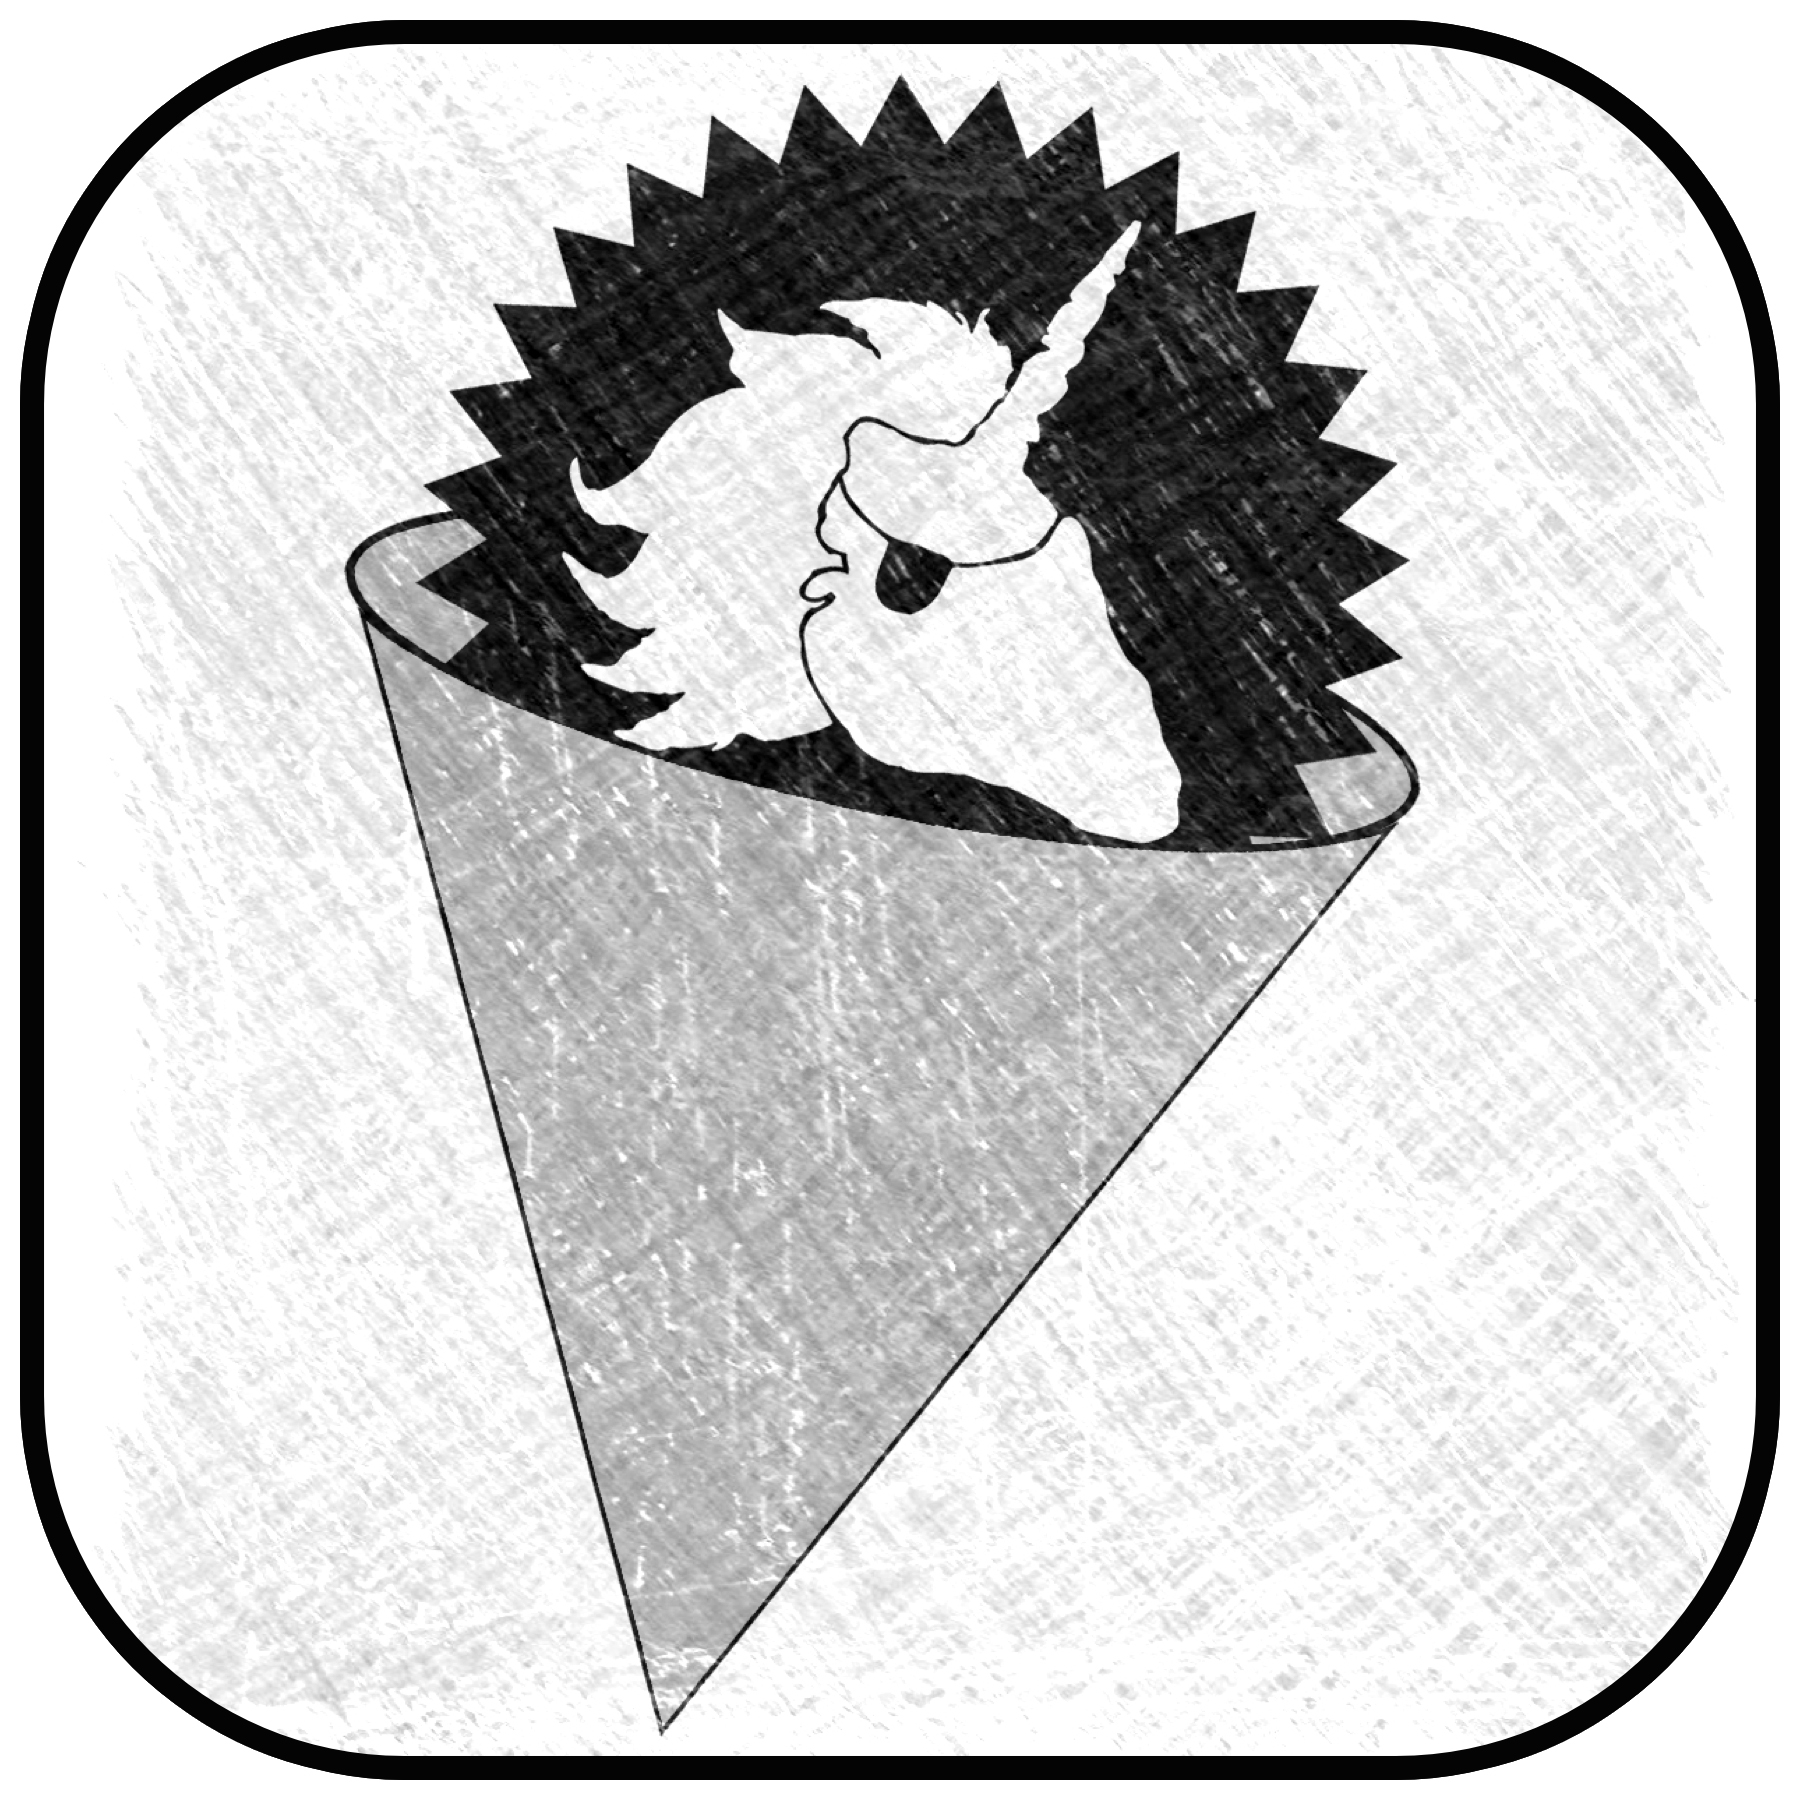 bootys_cone_icon_new.jpg